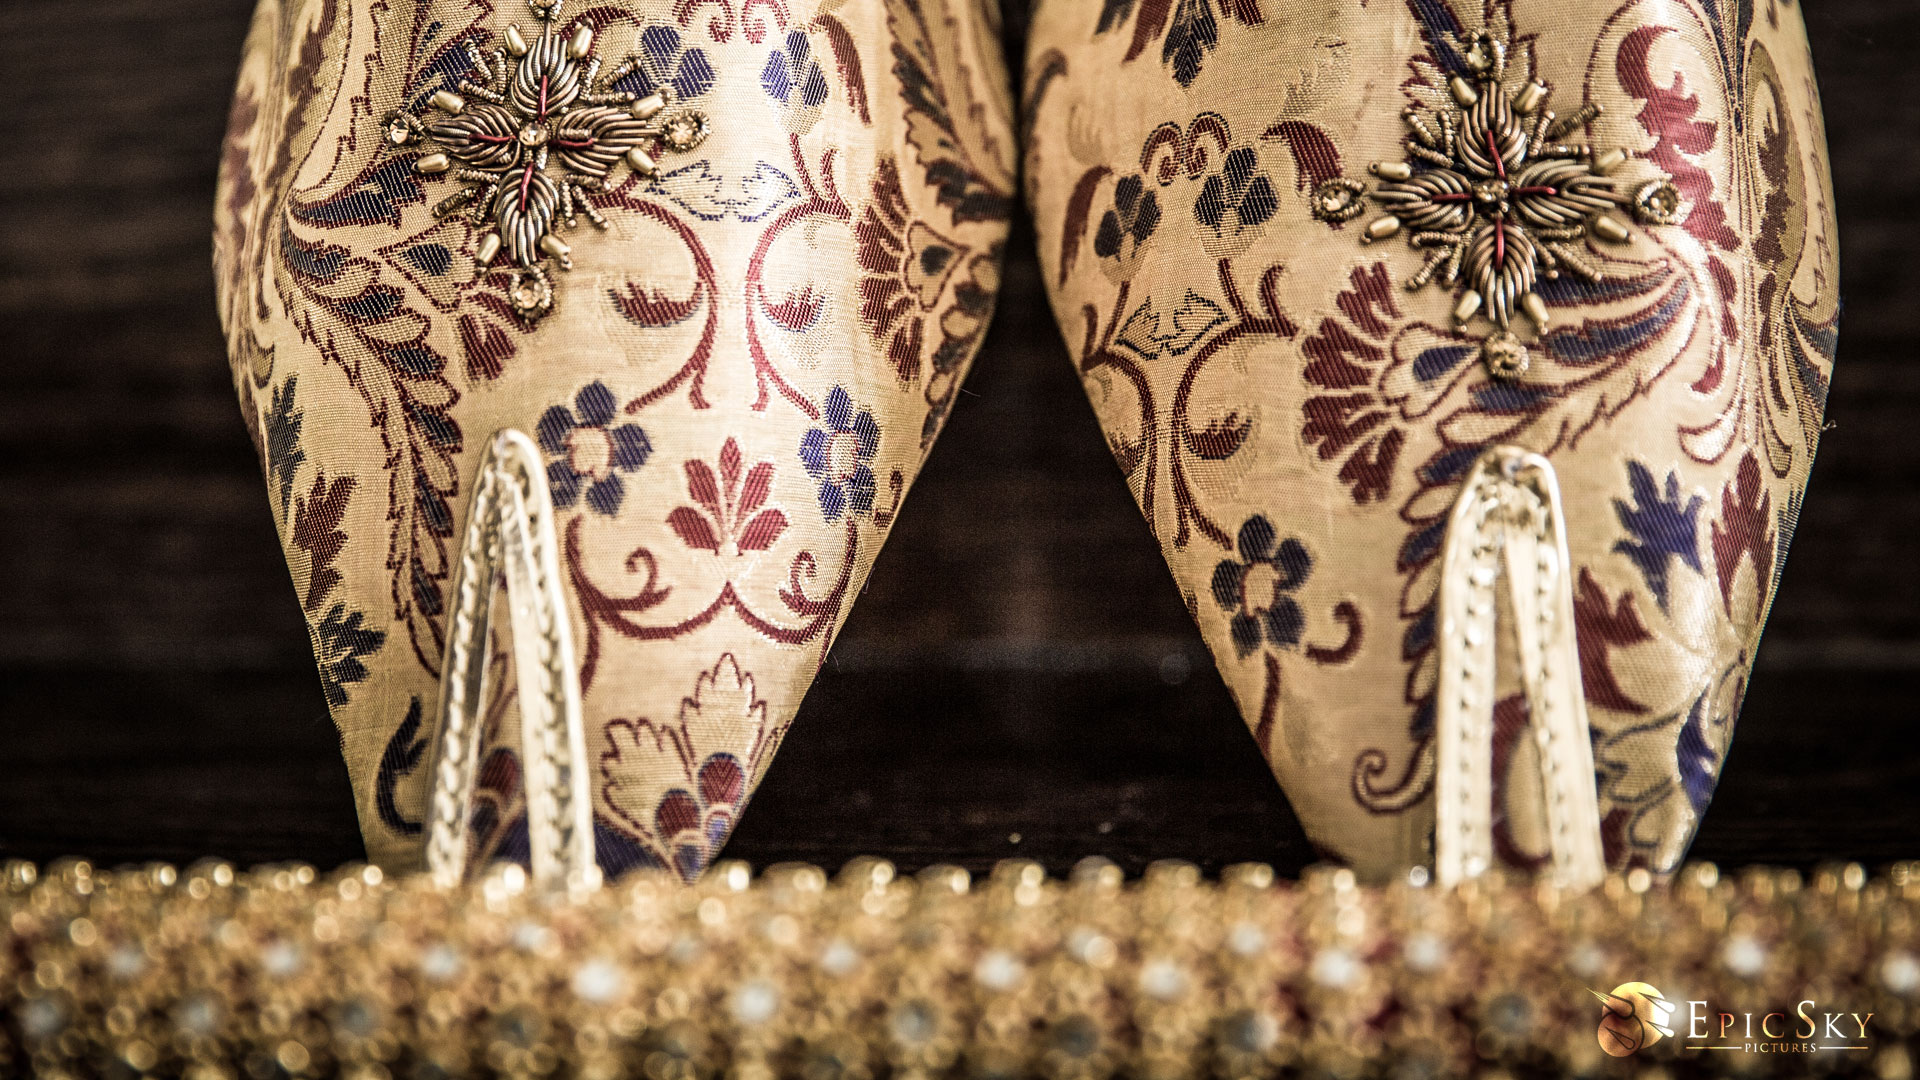 epic_sky_pictures_gold_shoes_hanging_photography_glimmer_wedding_groom_shoes_detail_designer_wedding_shoes_groomfashion_site